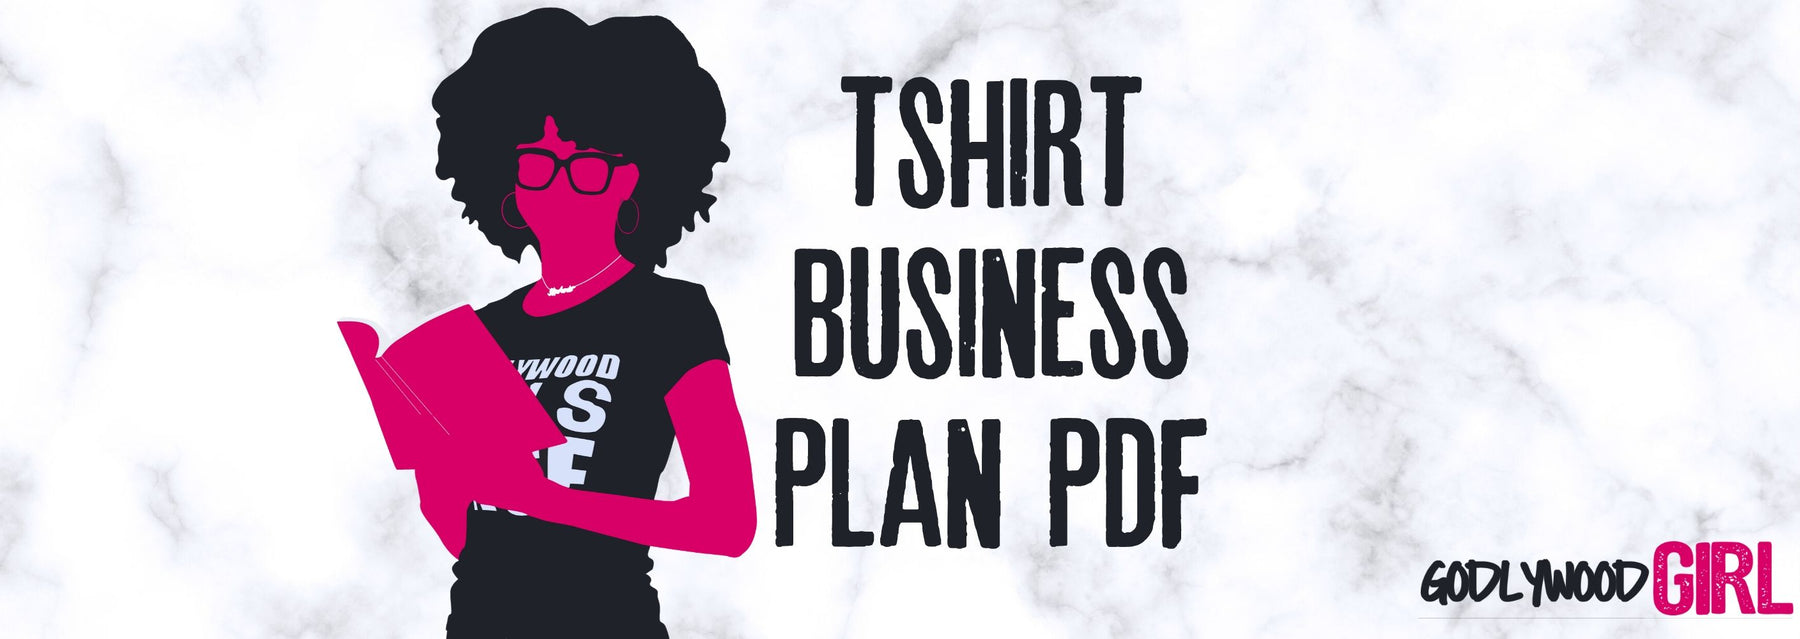 T SHIRT BUSINESS PLAN PDF || (How to start your own T-shirt business)